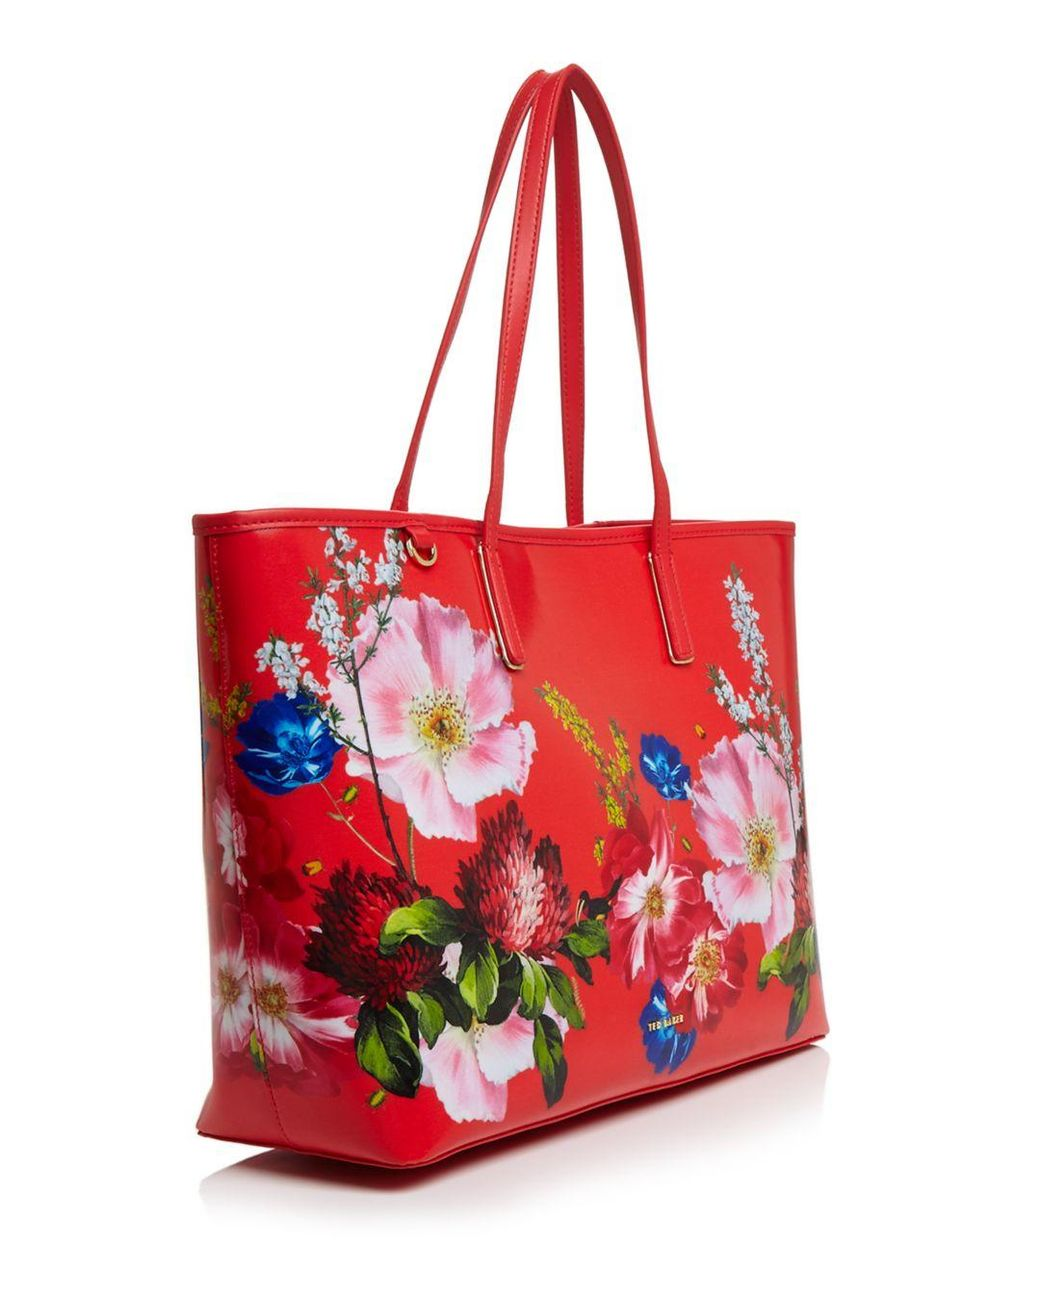 c87c967a58 Ted Baker Jenii Berry Sundae Large Shopper Tote in Red - Lyst